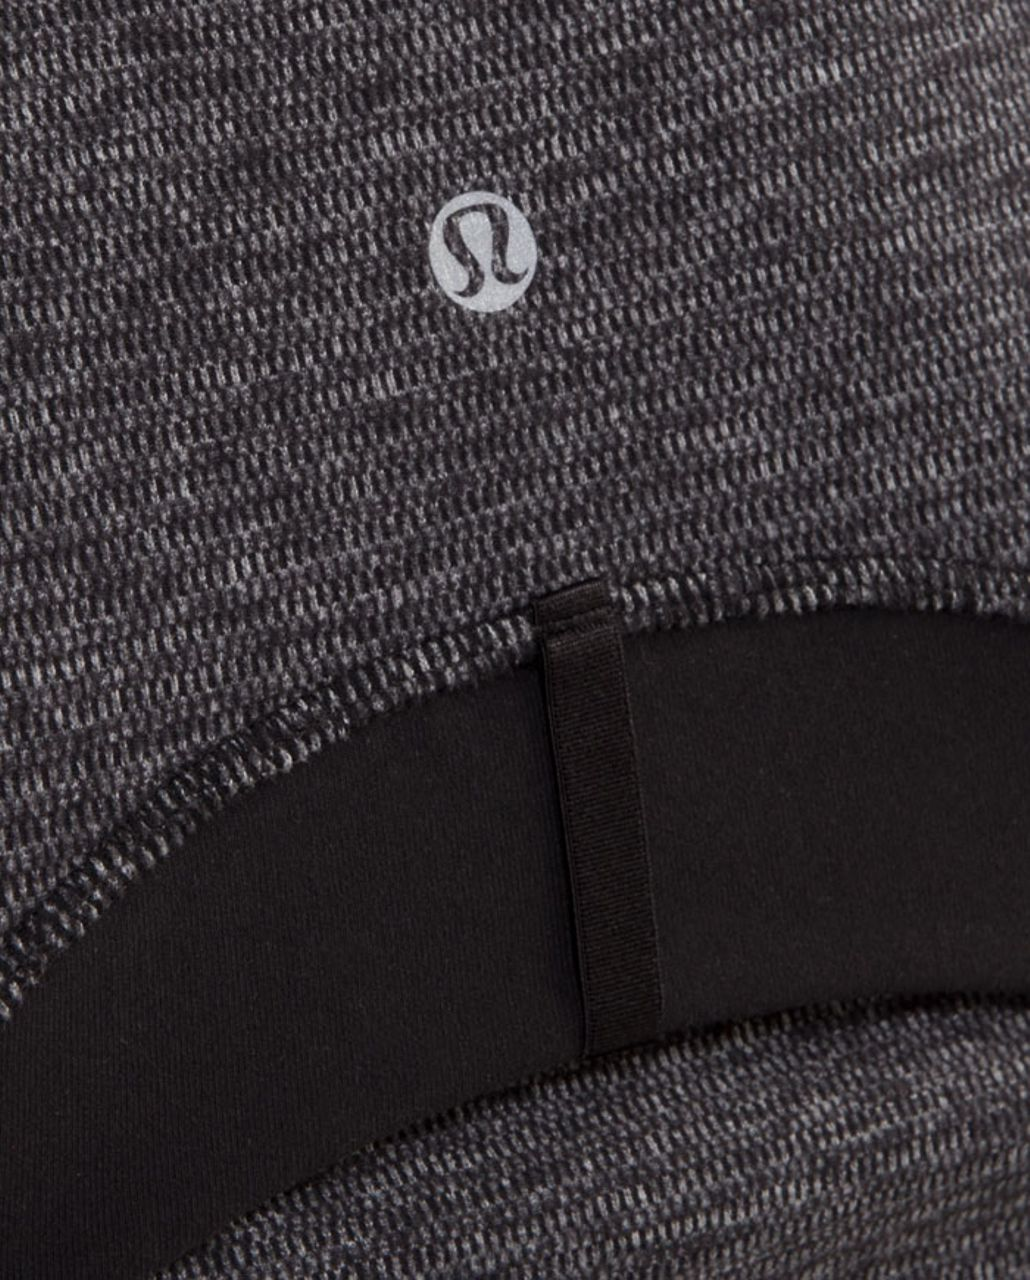 Lululemon Define Jacket *Soft Mini Check - Black Heathered Coal Mini Check /  Black